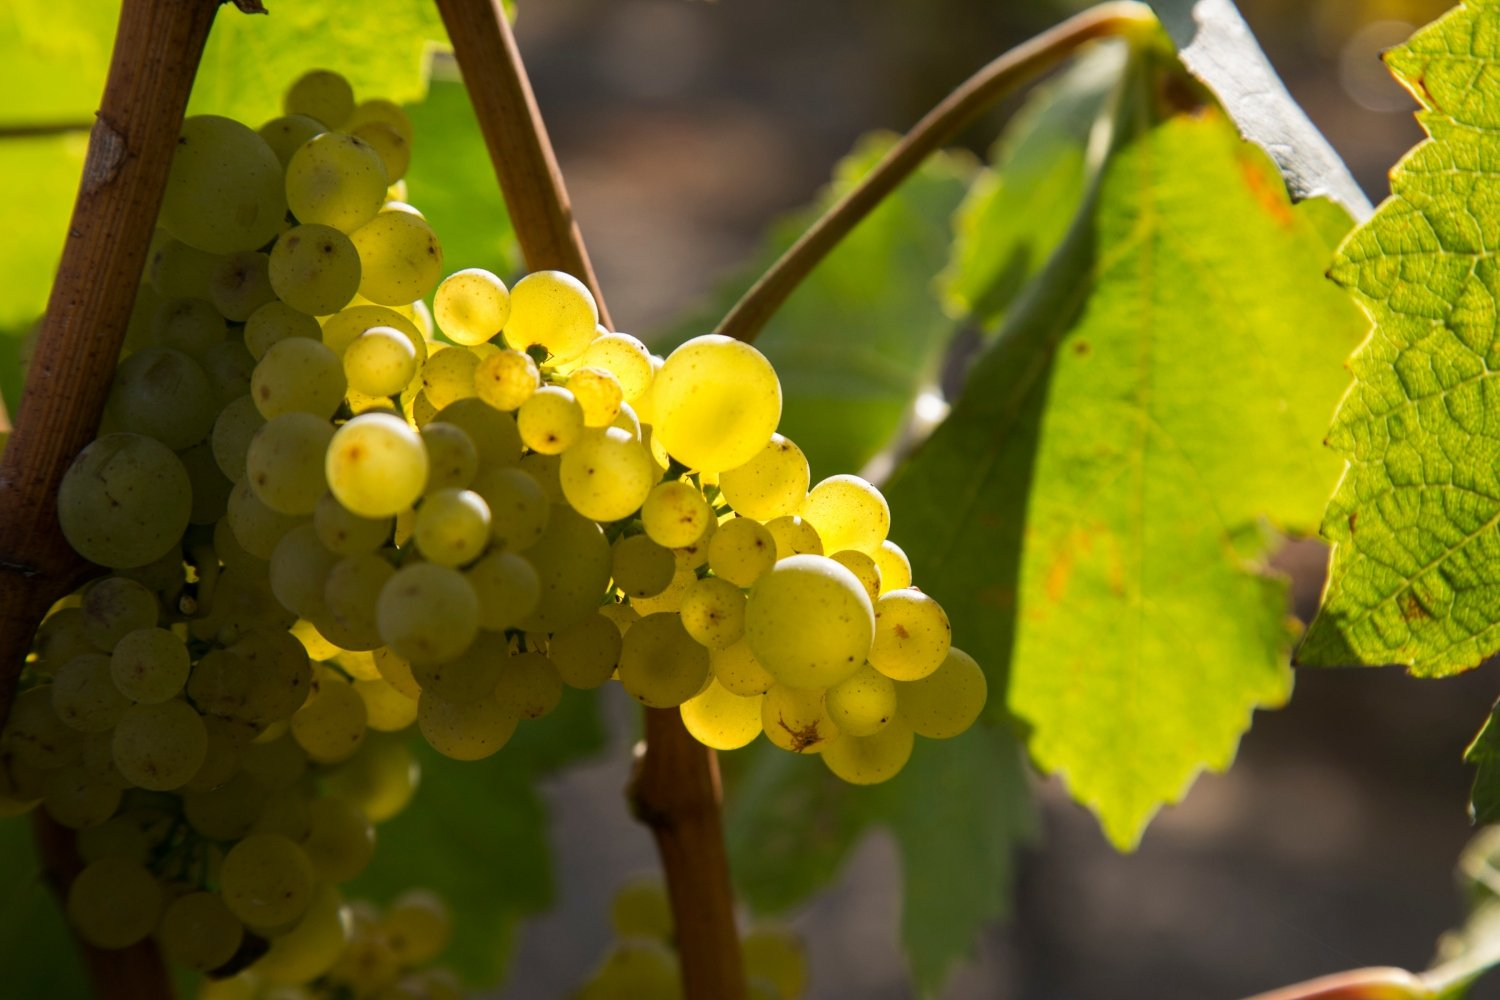 Chardonnay grapes in the Pisoni Vineyards